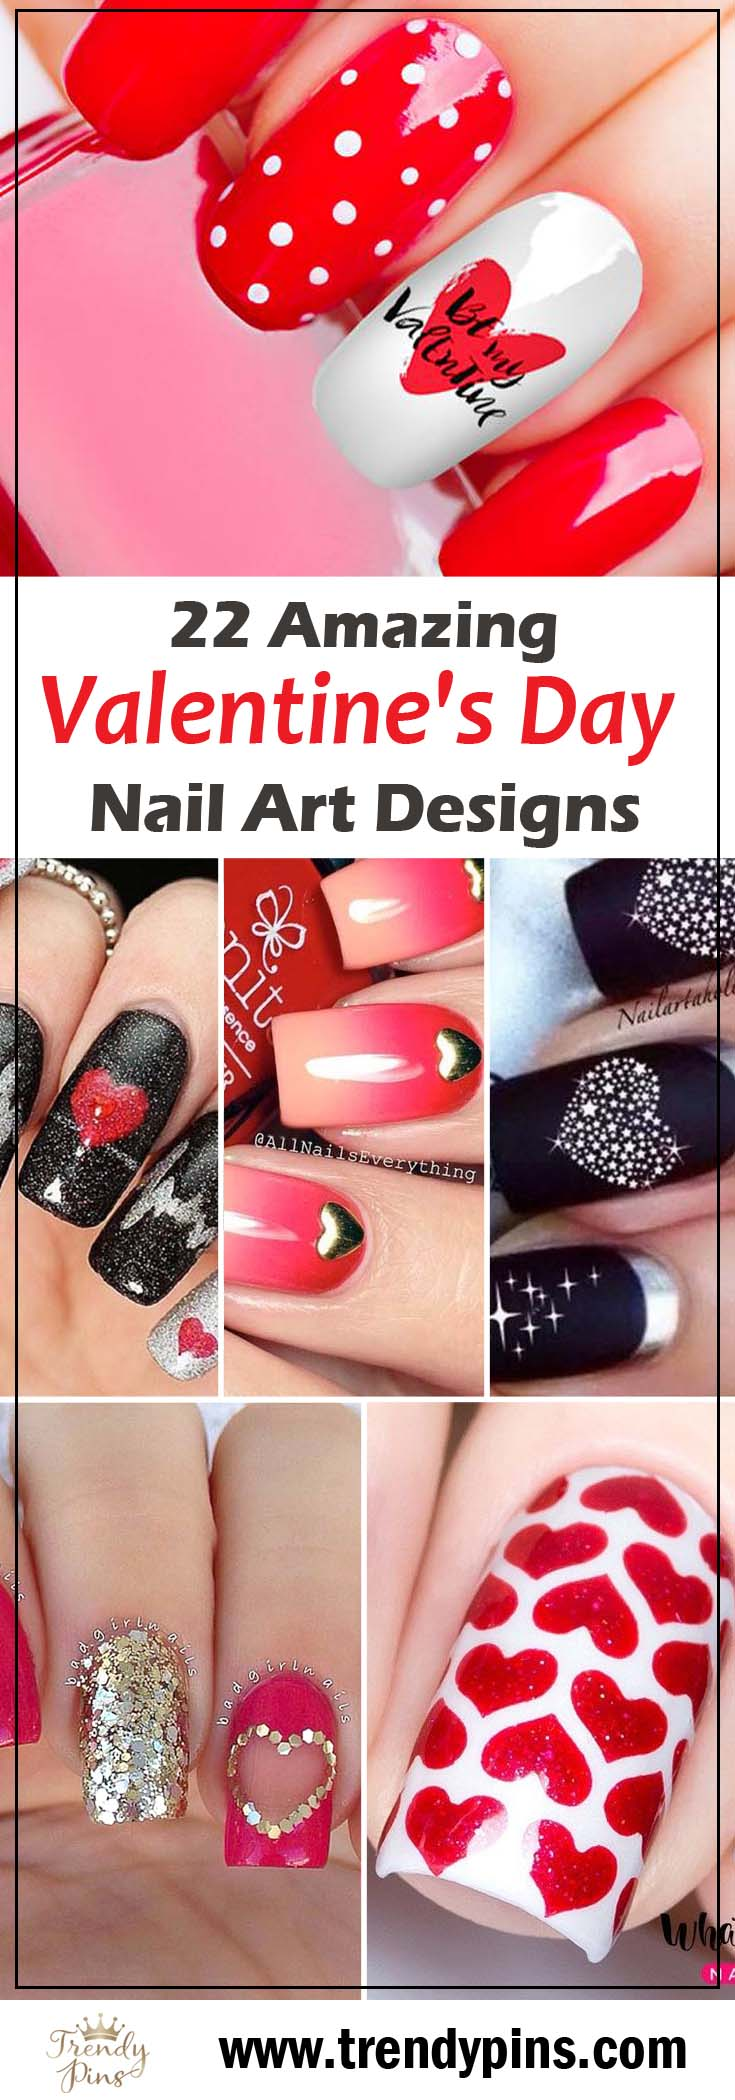 22 Amazing Valentine's Day Nail Art Designs #beauty #nails #trendypins